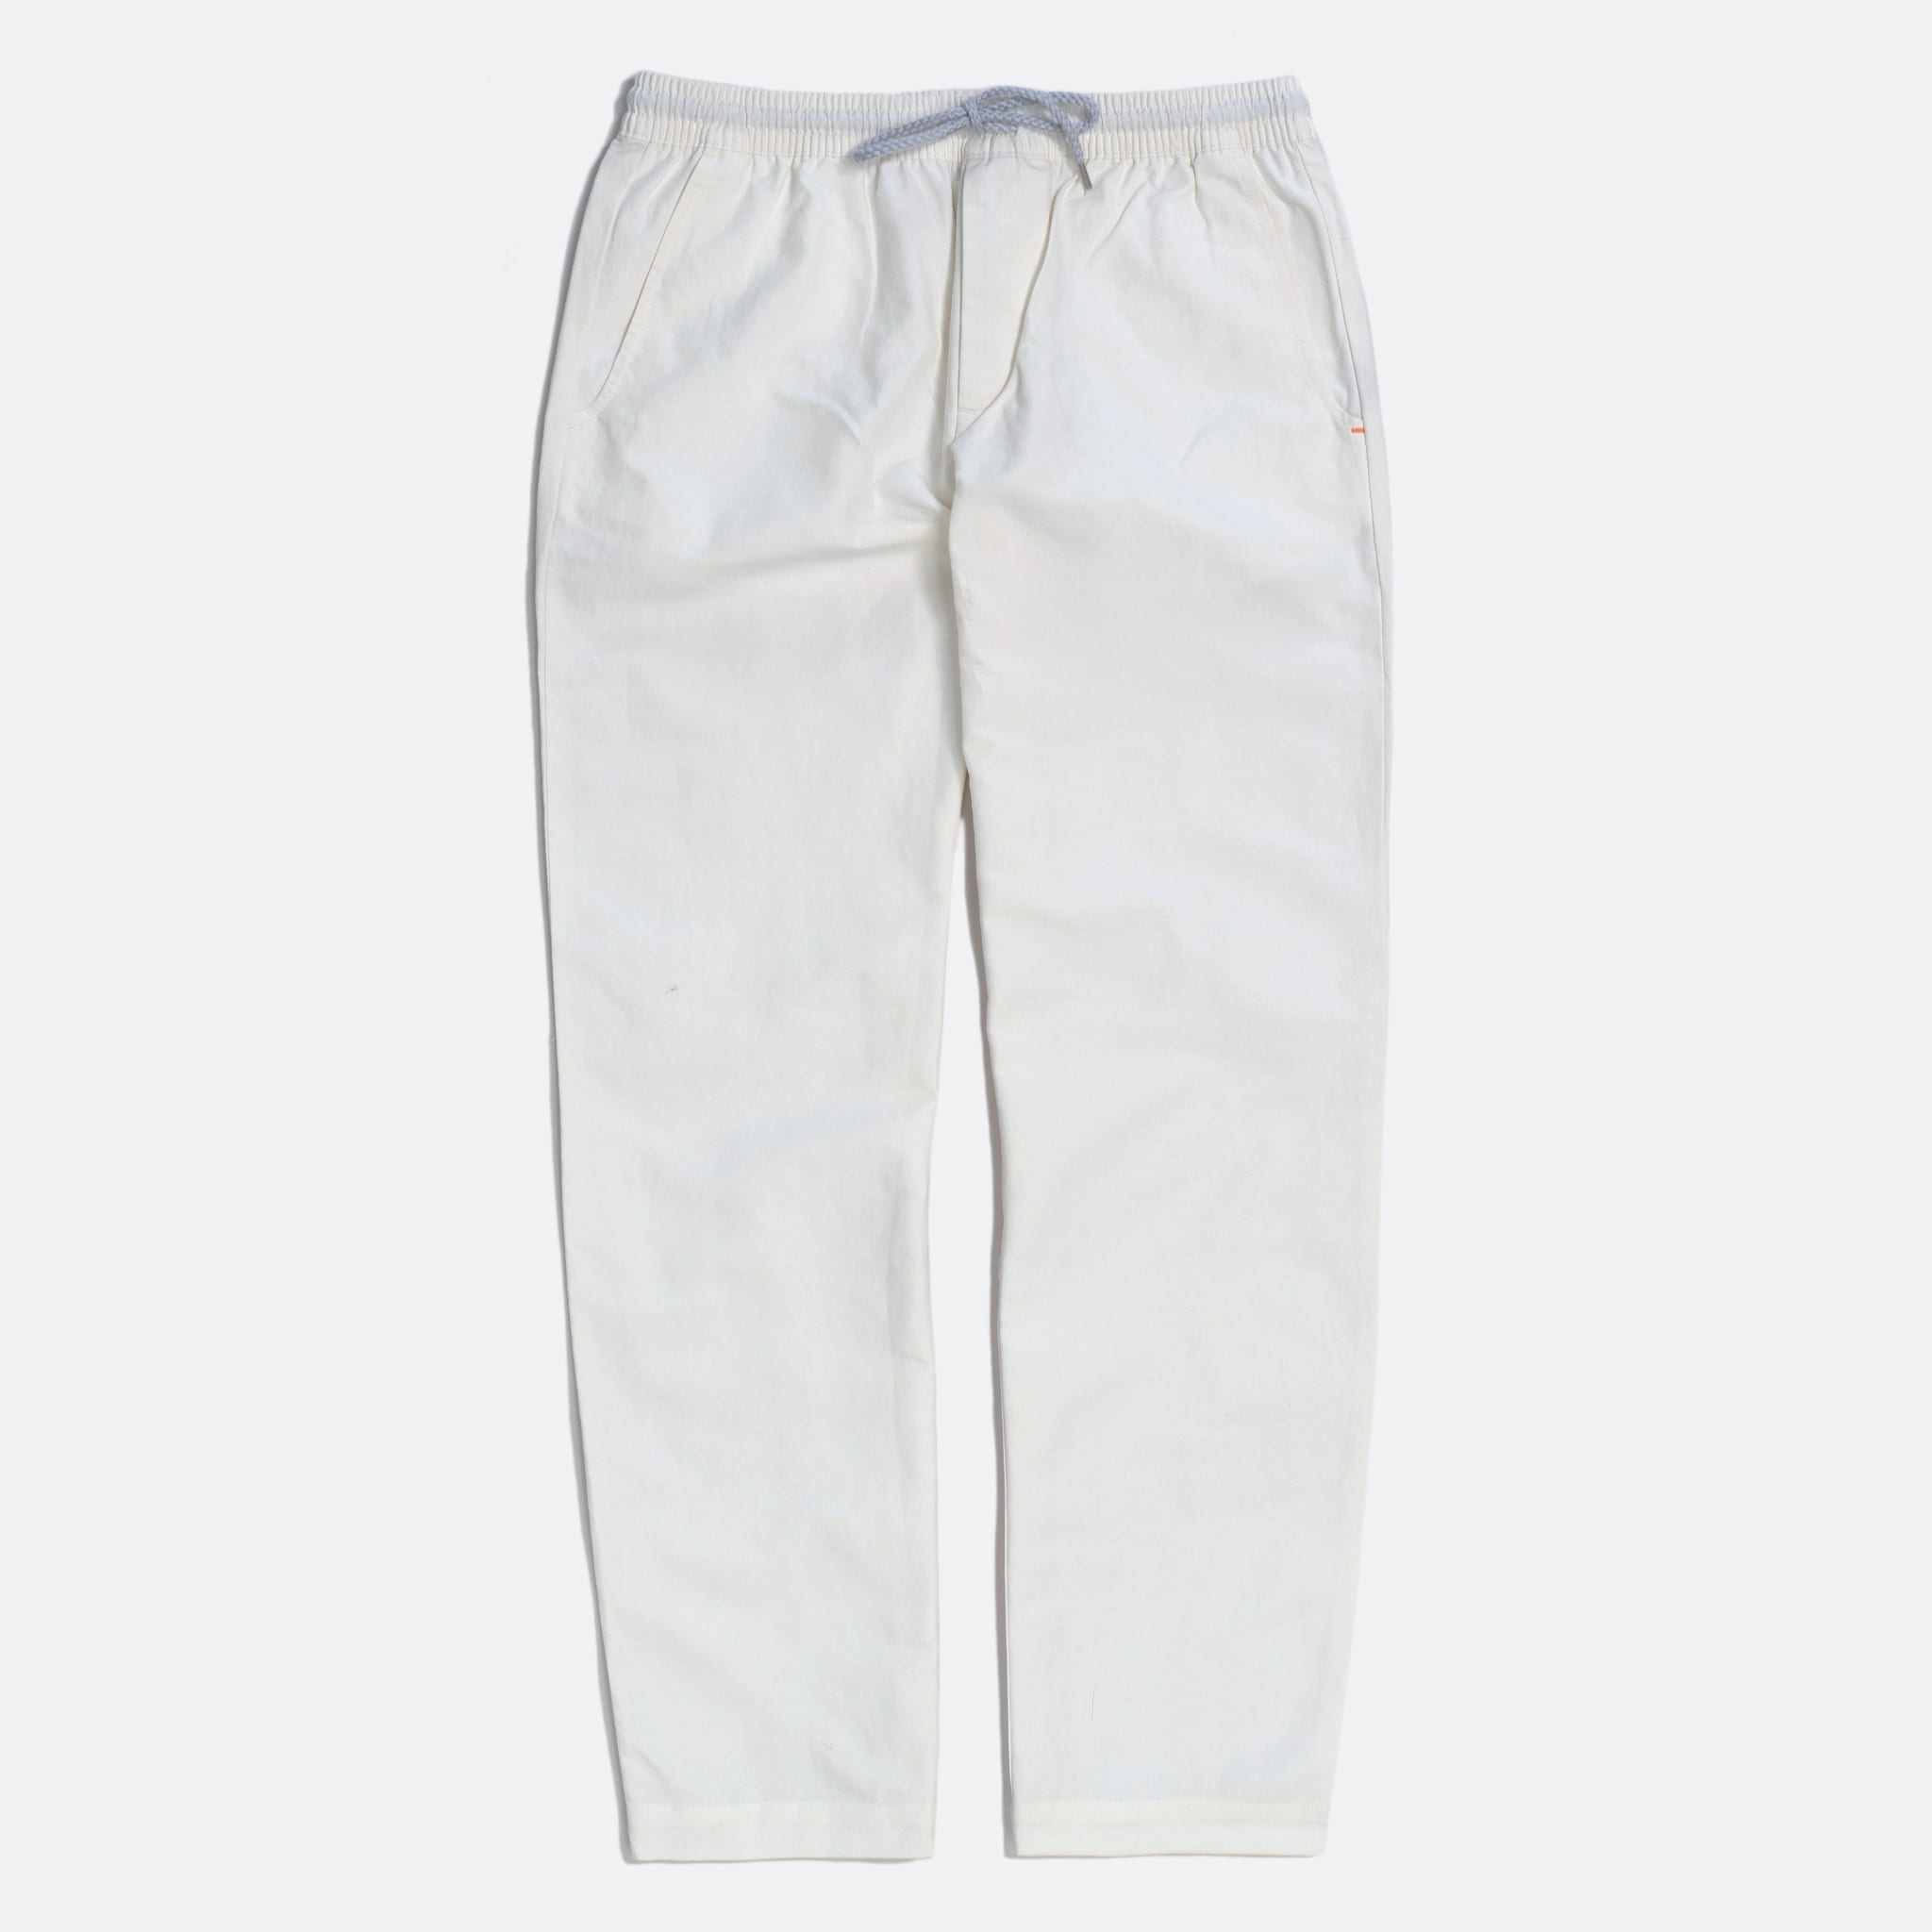 Far Afield House Trousers a White Sand Linen Fabric Smart Casual